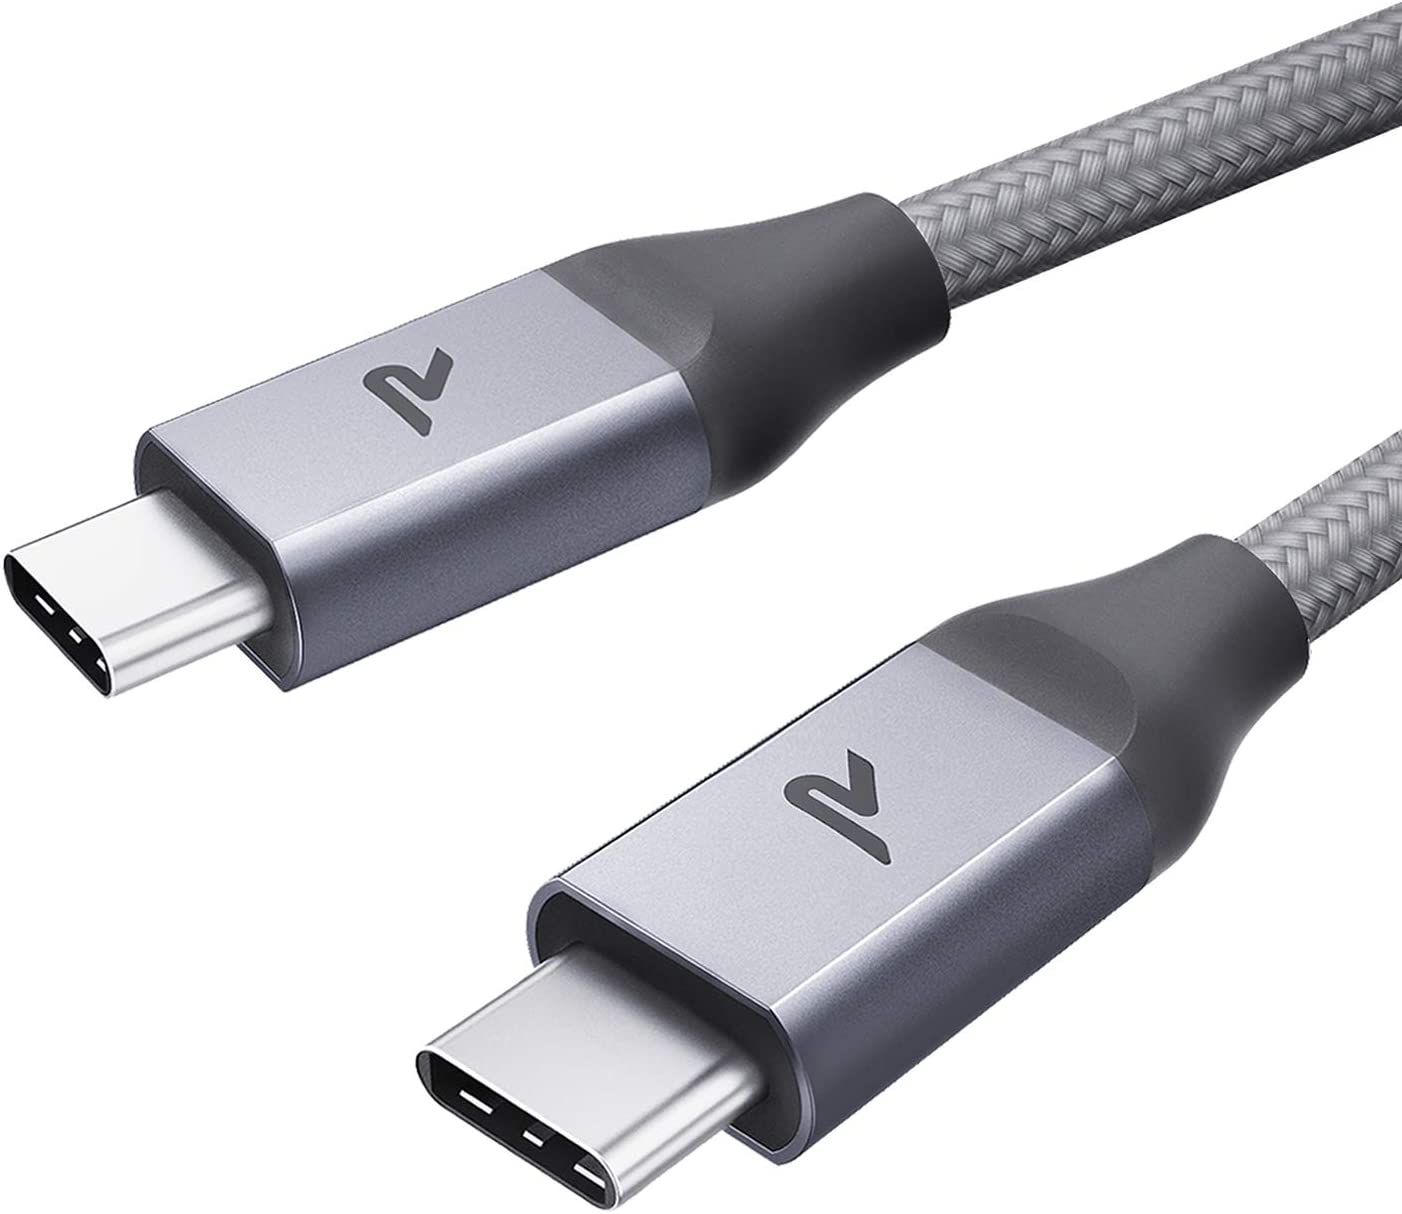 RAMPOW Cable USB C a USB C [20V/3A 60W] 2M Cable Tipo C a Tipo C con Power Delivery Compatible para Macbook Pro 2016/2017, ChromeBook Pixel/Pixel 2, Samsung S9/S8/Note 8, Nintendo Switch-Gris